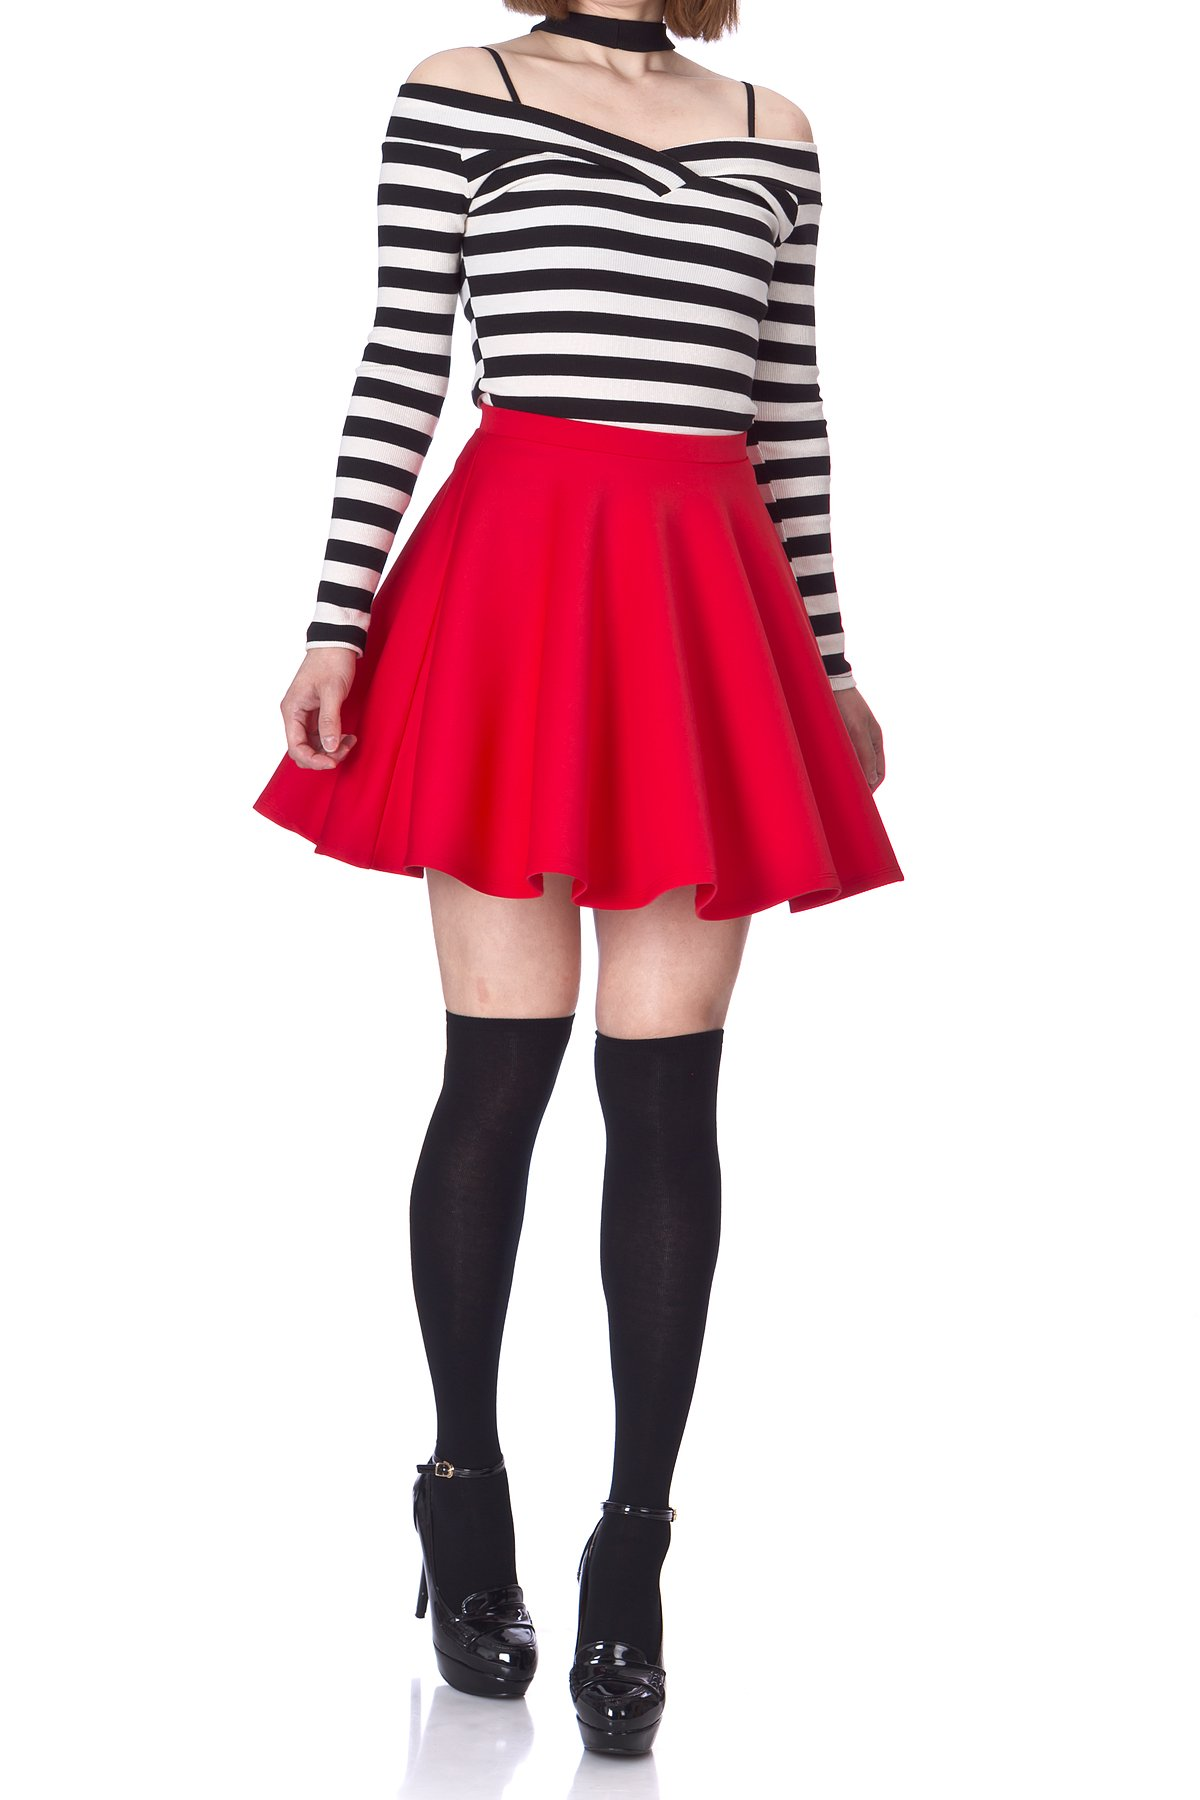 Flouncy High Waist A line Full Flared Circle Swing Dance Party Casual Skater Short Mini Skirt Red 01